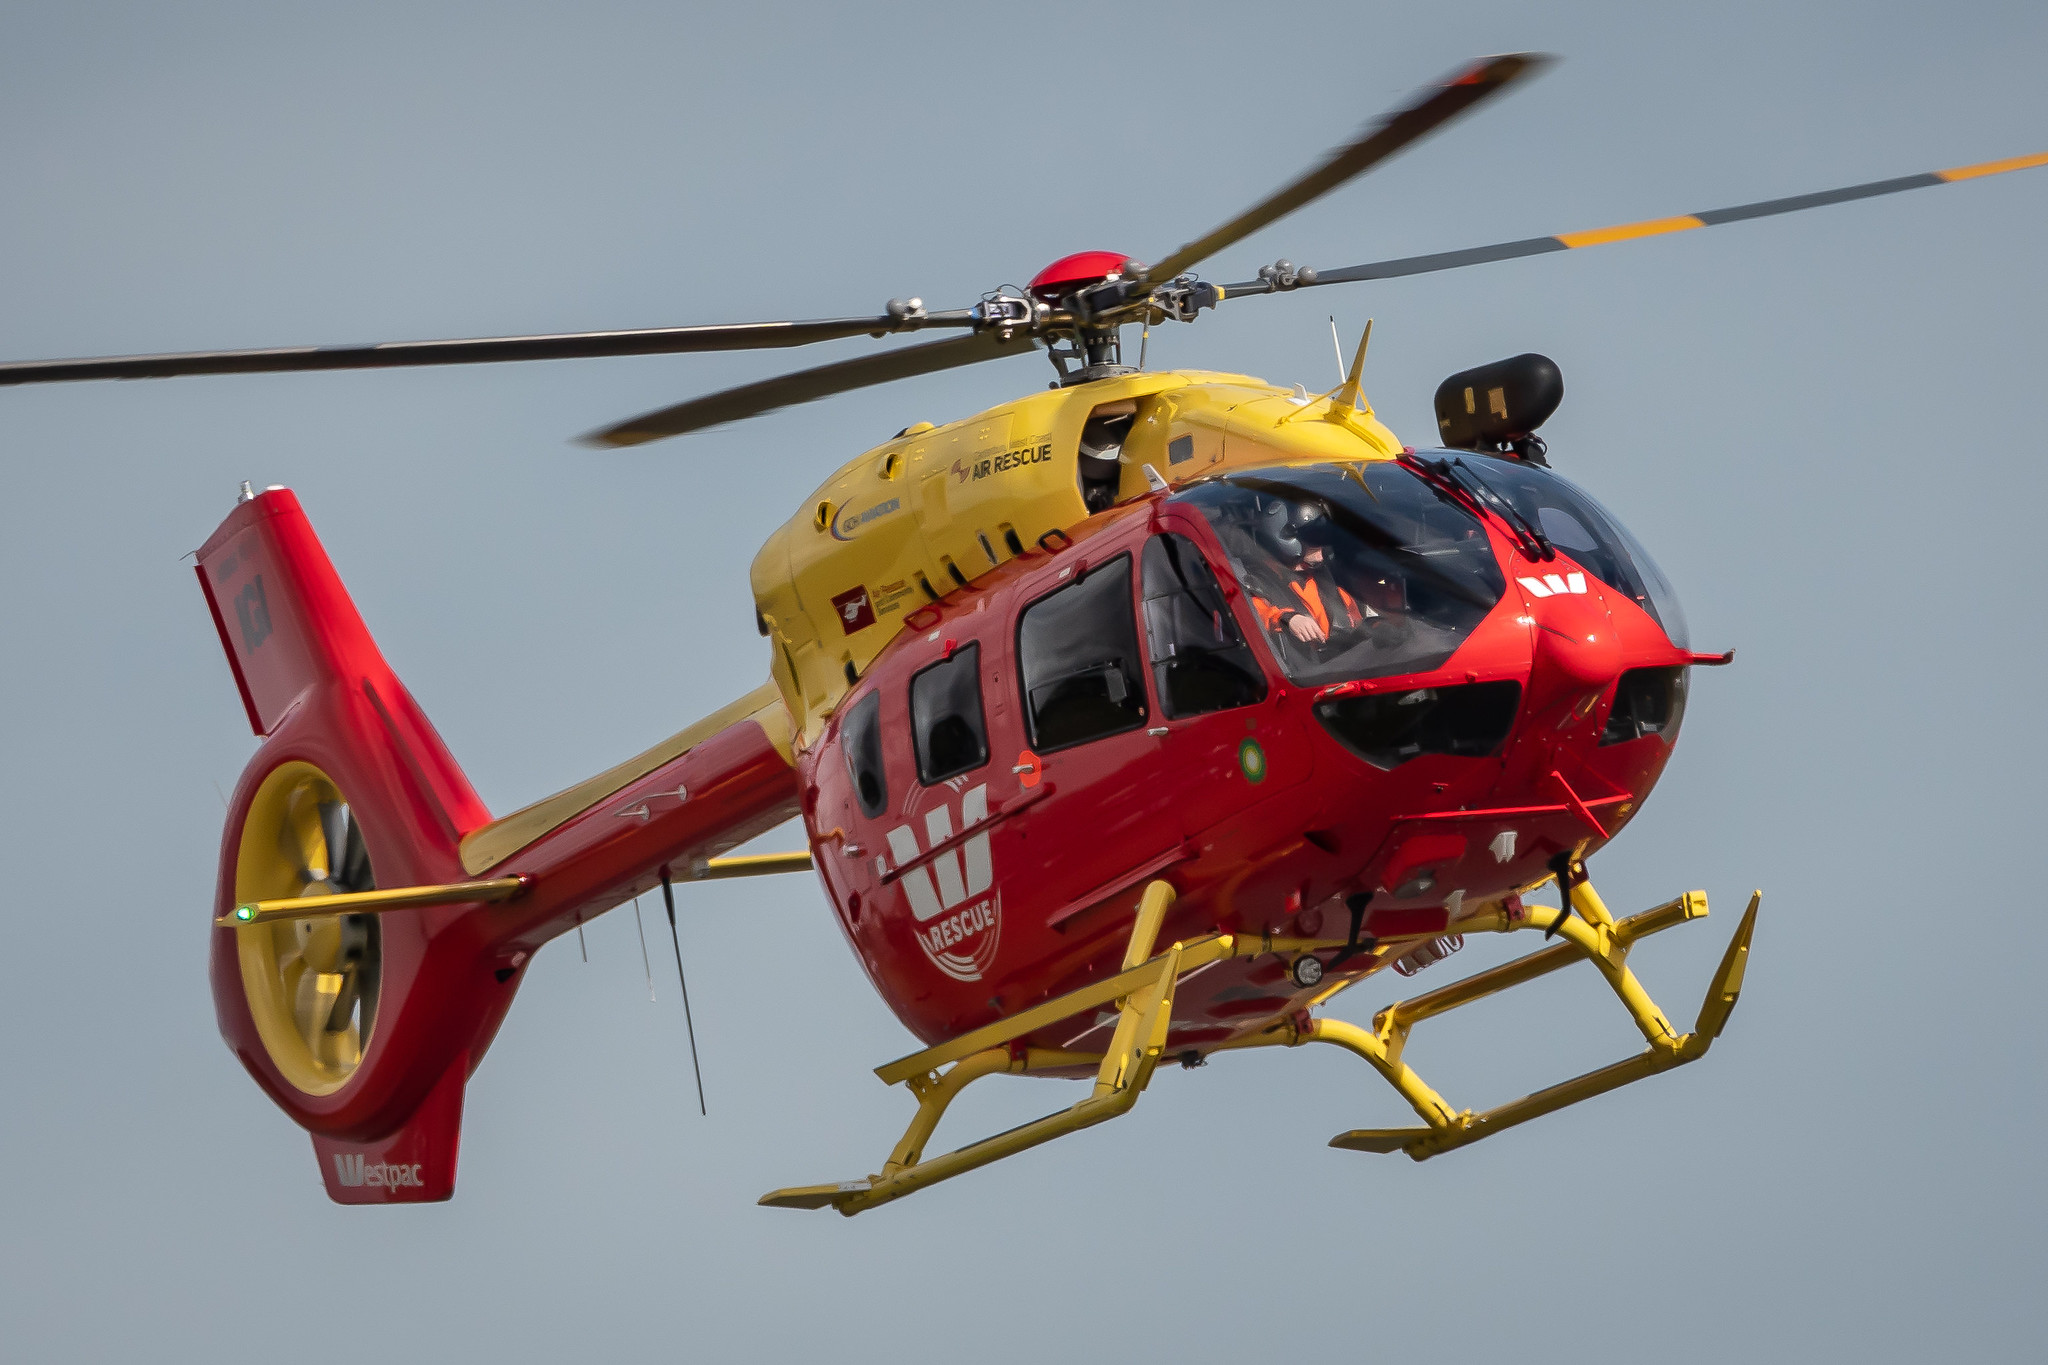 Westpac Rescue Helicopter (ZK-IGI) in Greymouth